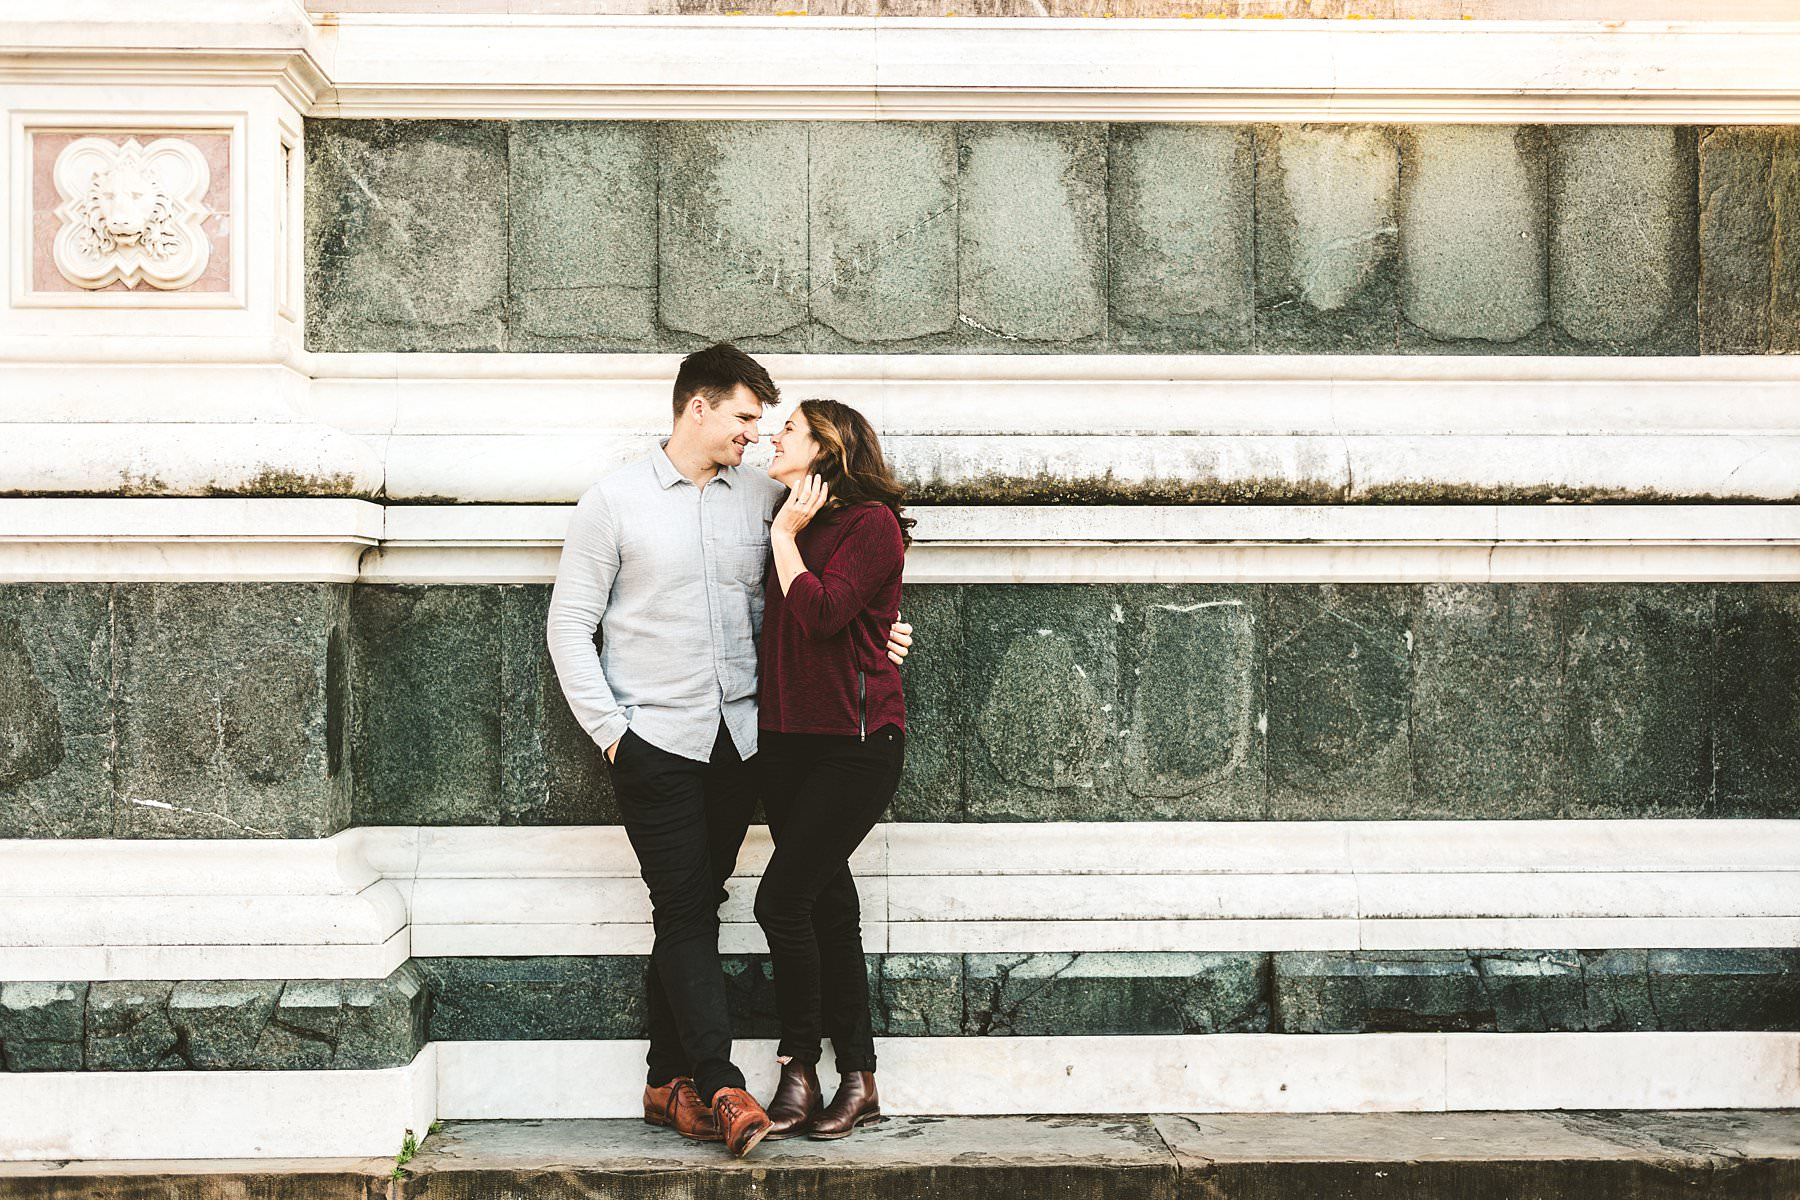 Claudia and Andrew's romantic engagement photo session at Piazza Santa Croce in the heart of Florence